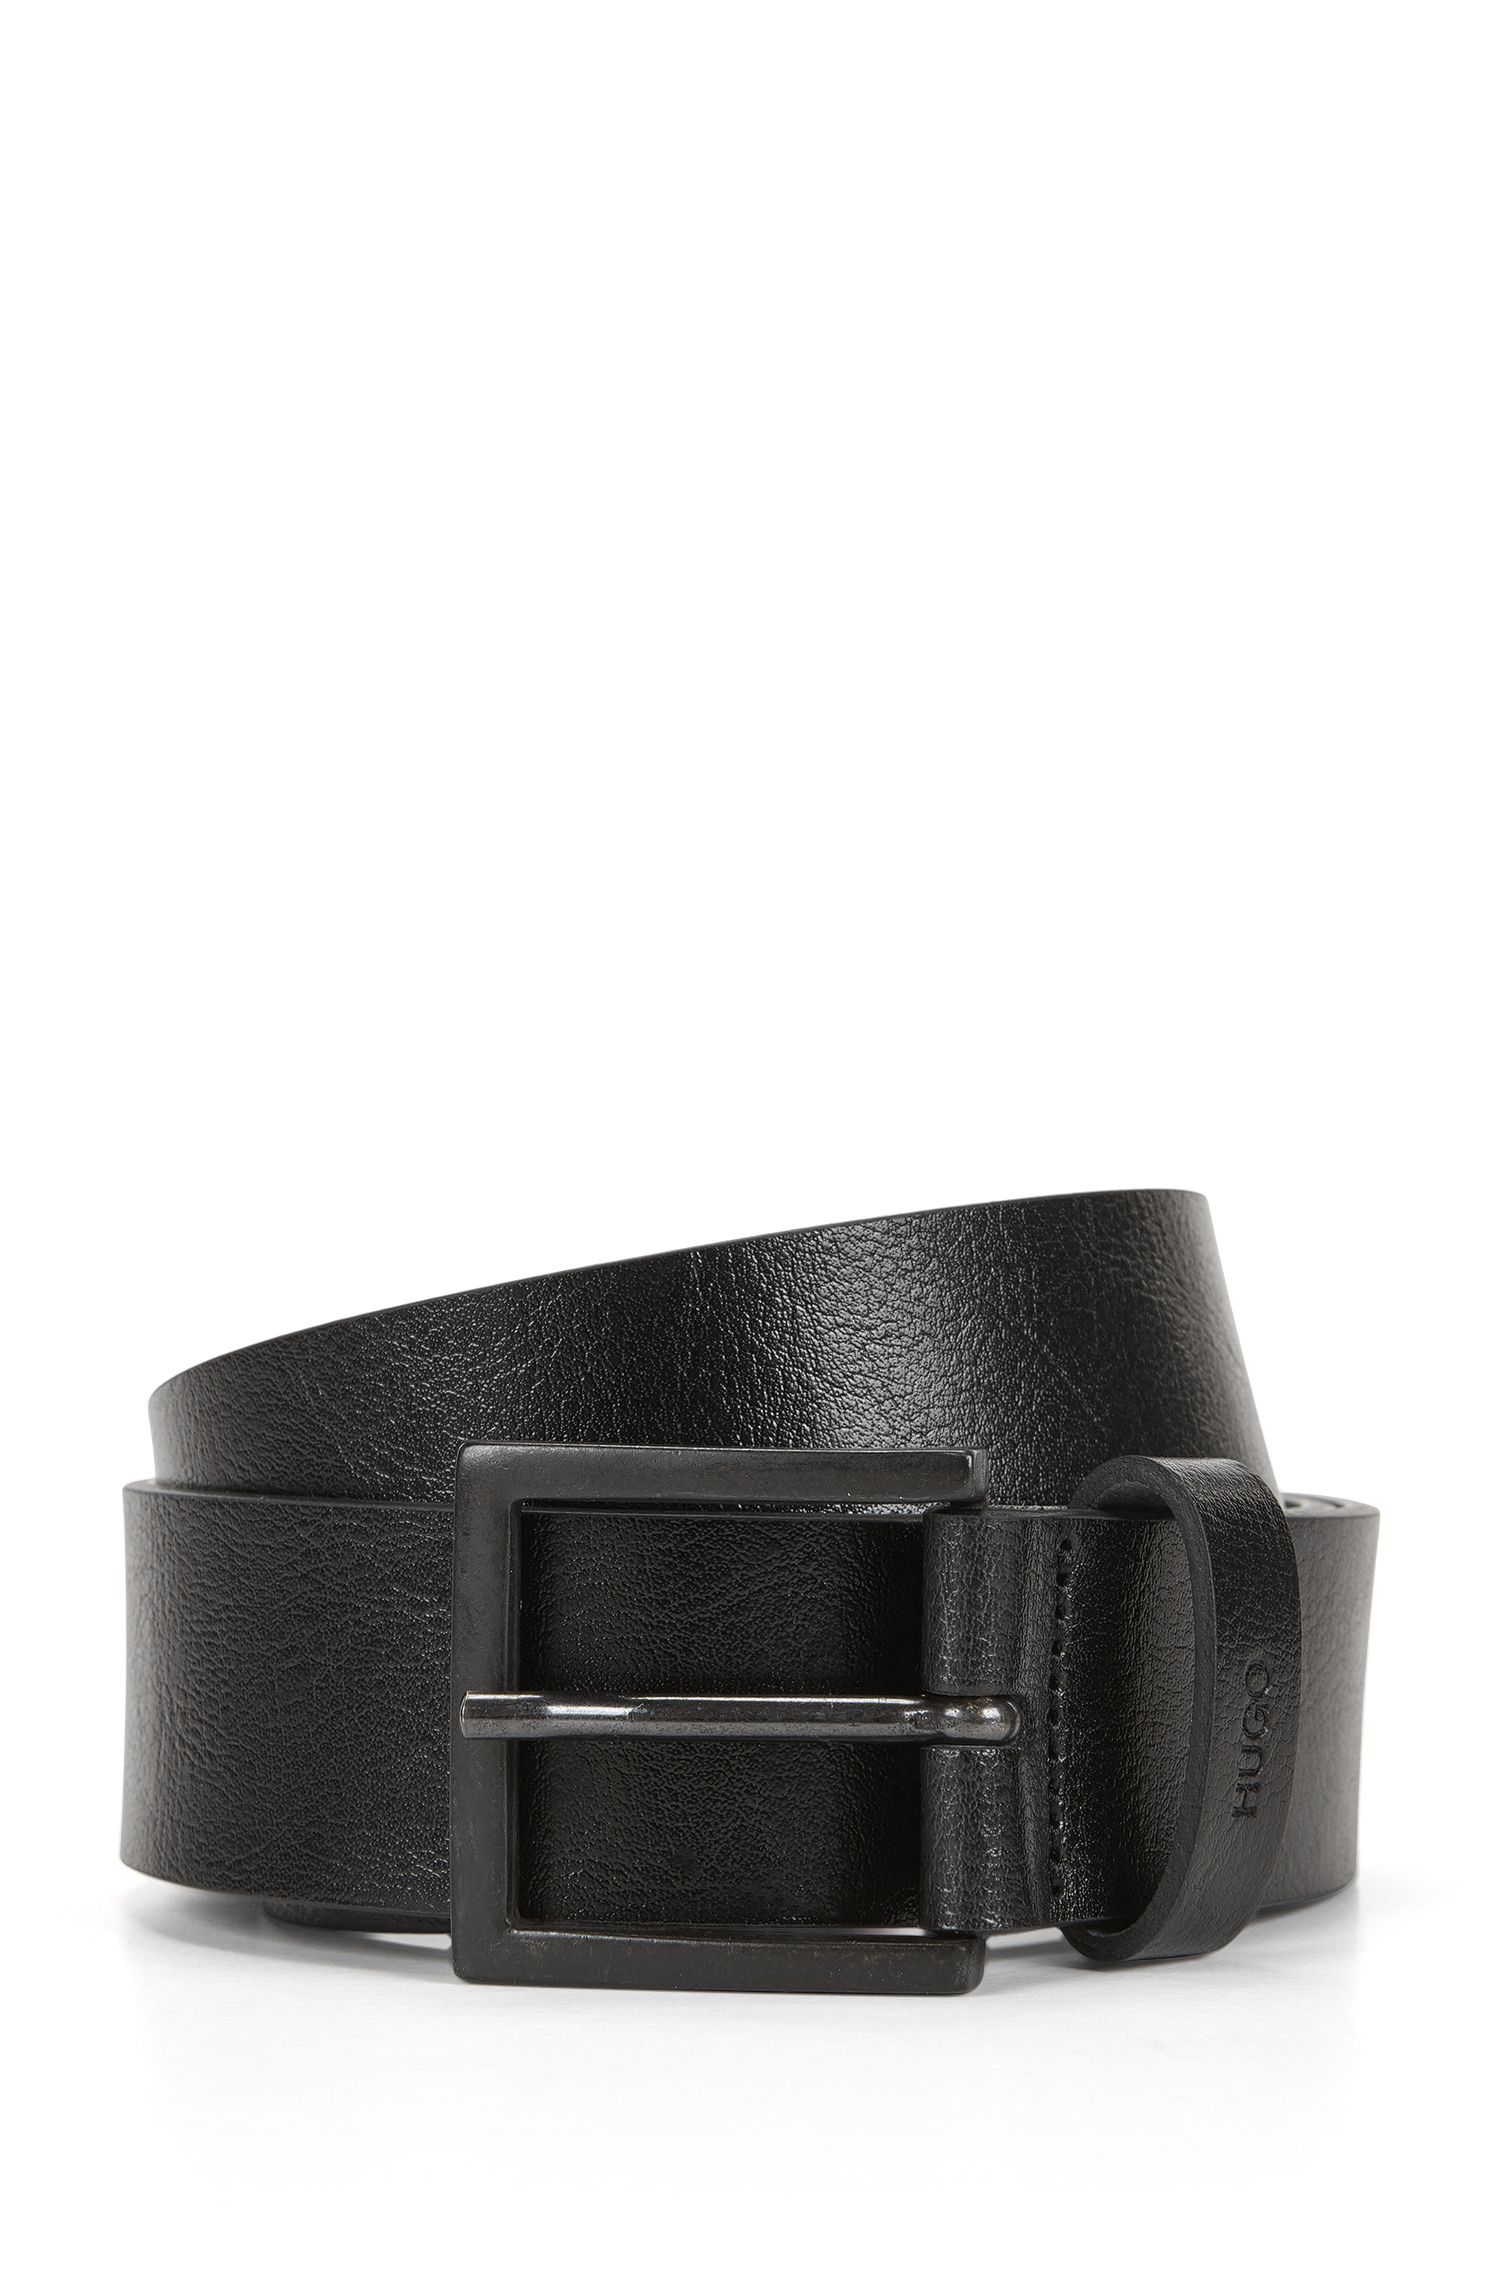 Pin-buckle leather belt with distressed finish